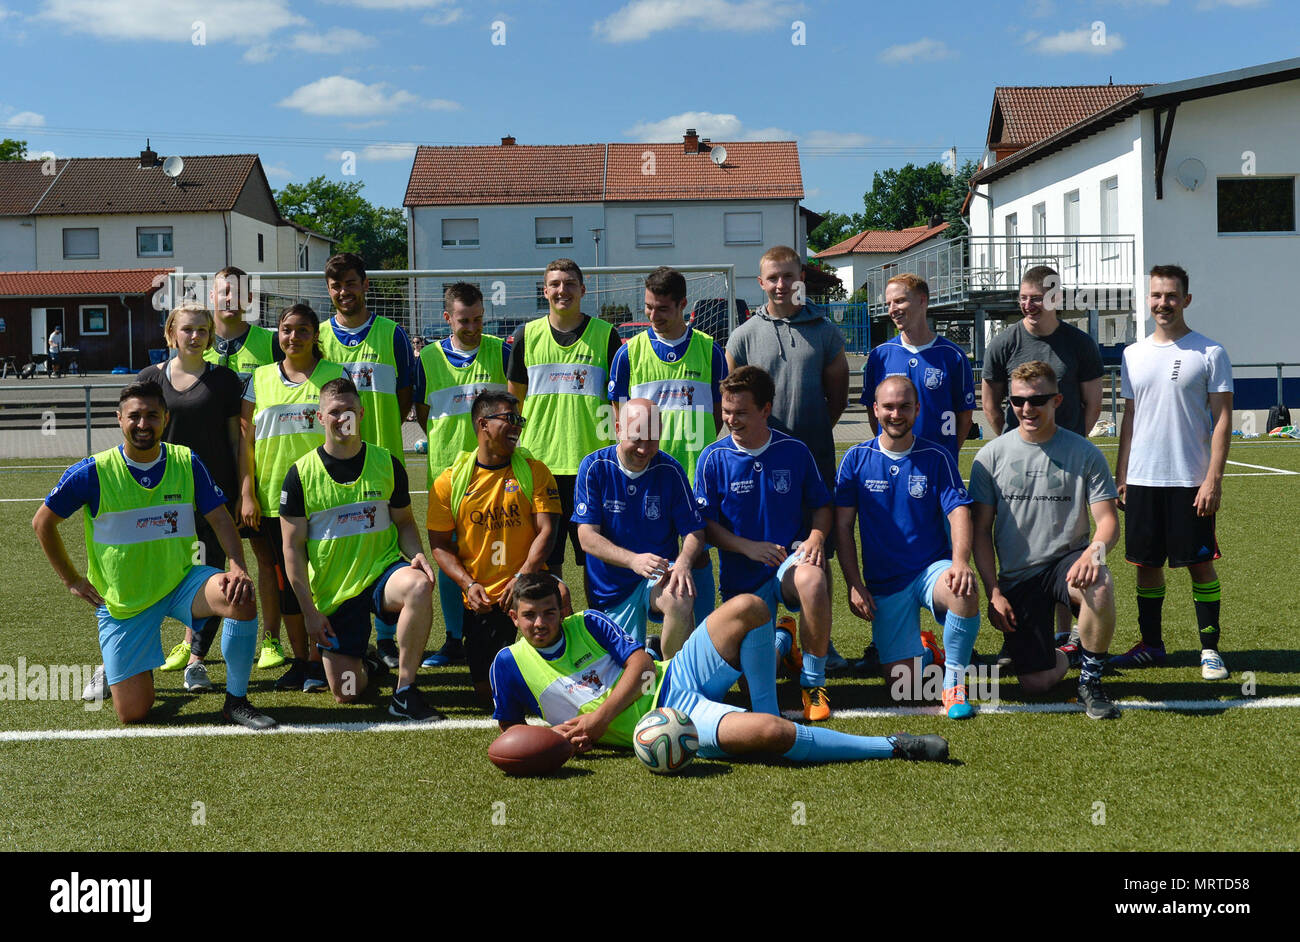 Ramstein Air Base Airmen and Fussballverein Ramstein Fußball Club A-Team pose for a photo during the Grassroots program sports day, at FV Olympia Field in Ramstein Misenbach, Germany, June 24, 2017. More than 25 Airmen and soccer players volunteered for the event to help build relations between service members and the local community. (U.S. Air Force photo by Staff Sgt. Nesha Humes) - Stock Image